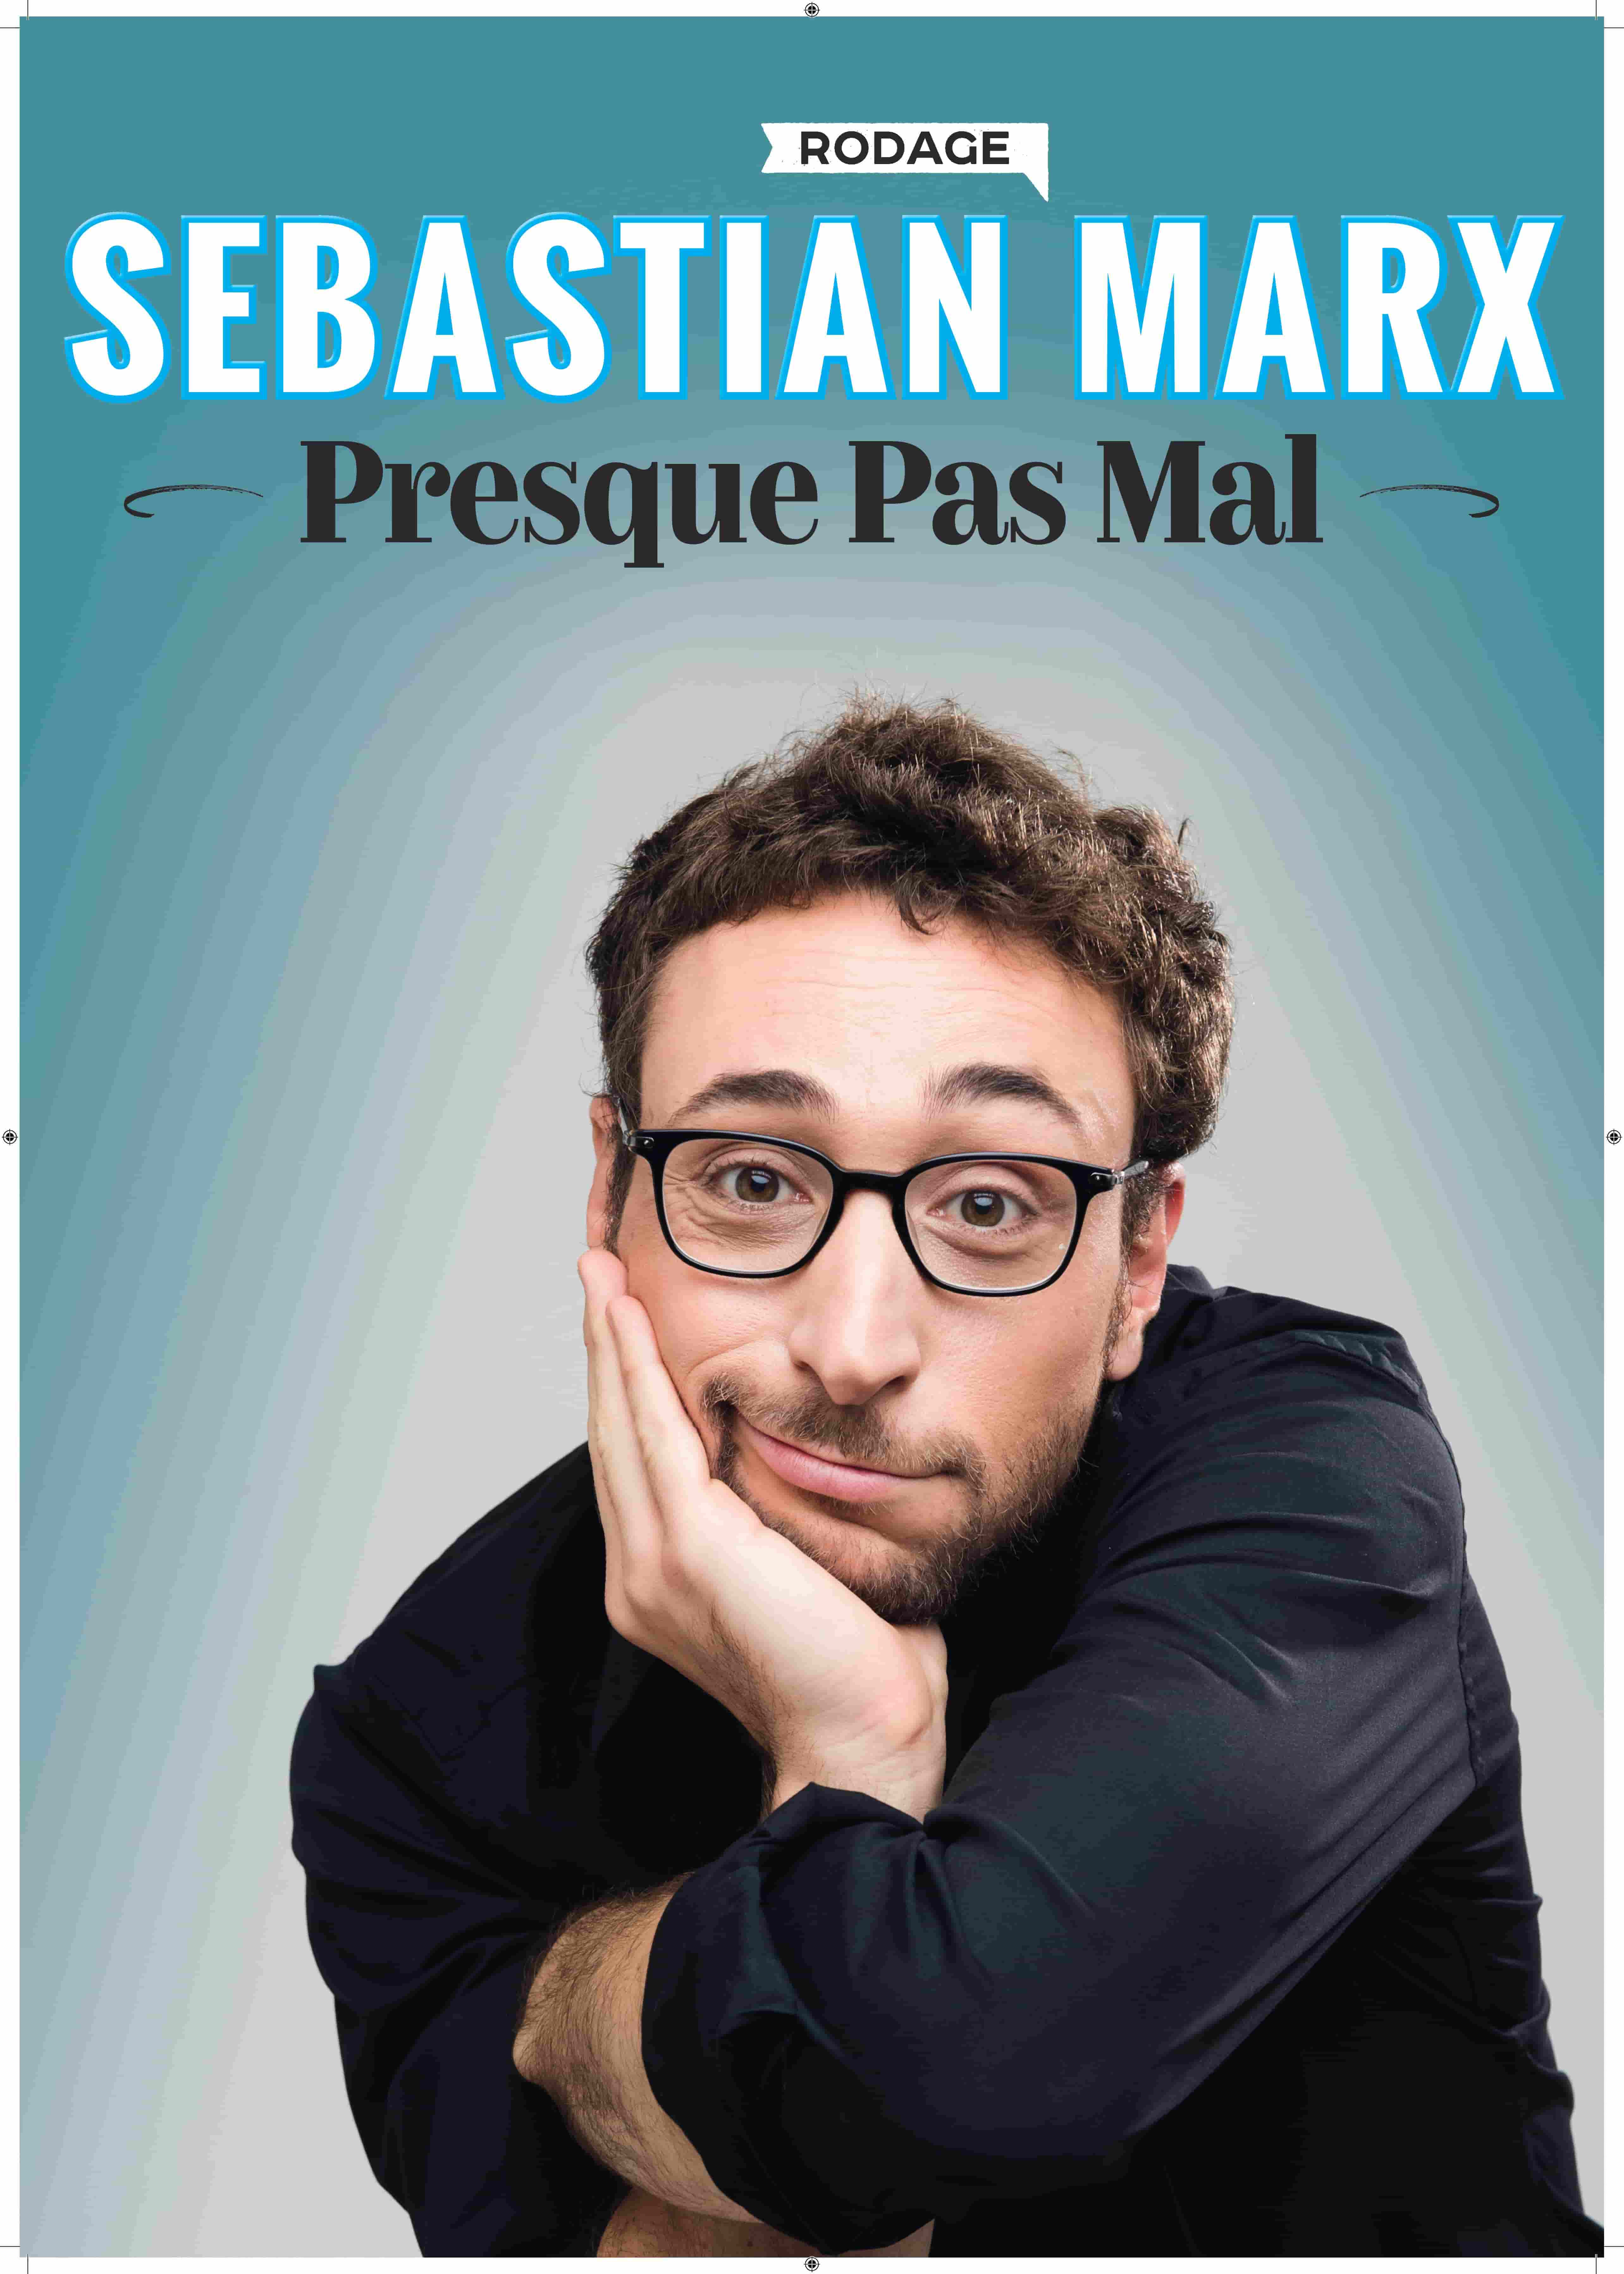 Sebastian Marx - Art Dû - Marseille - 13006 - Stand Up